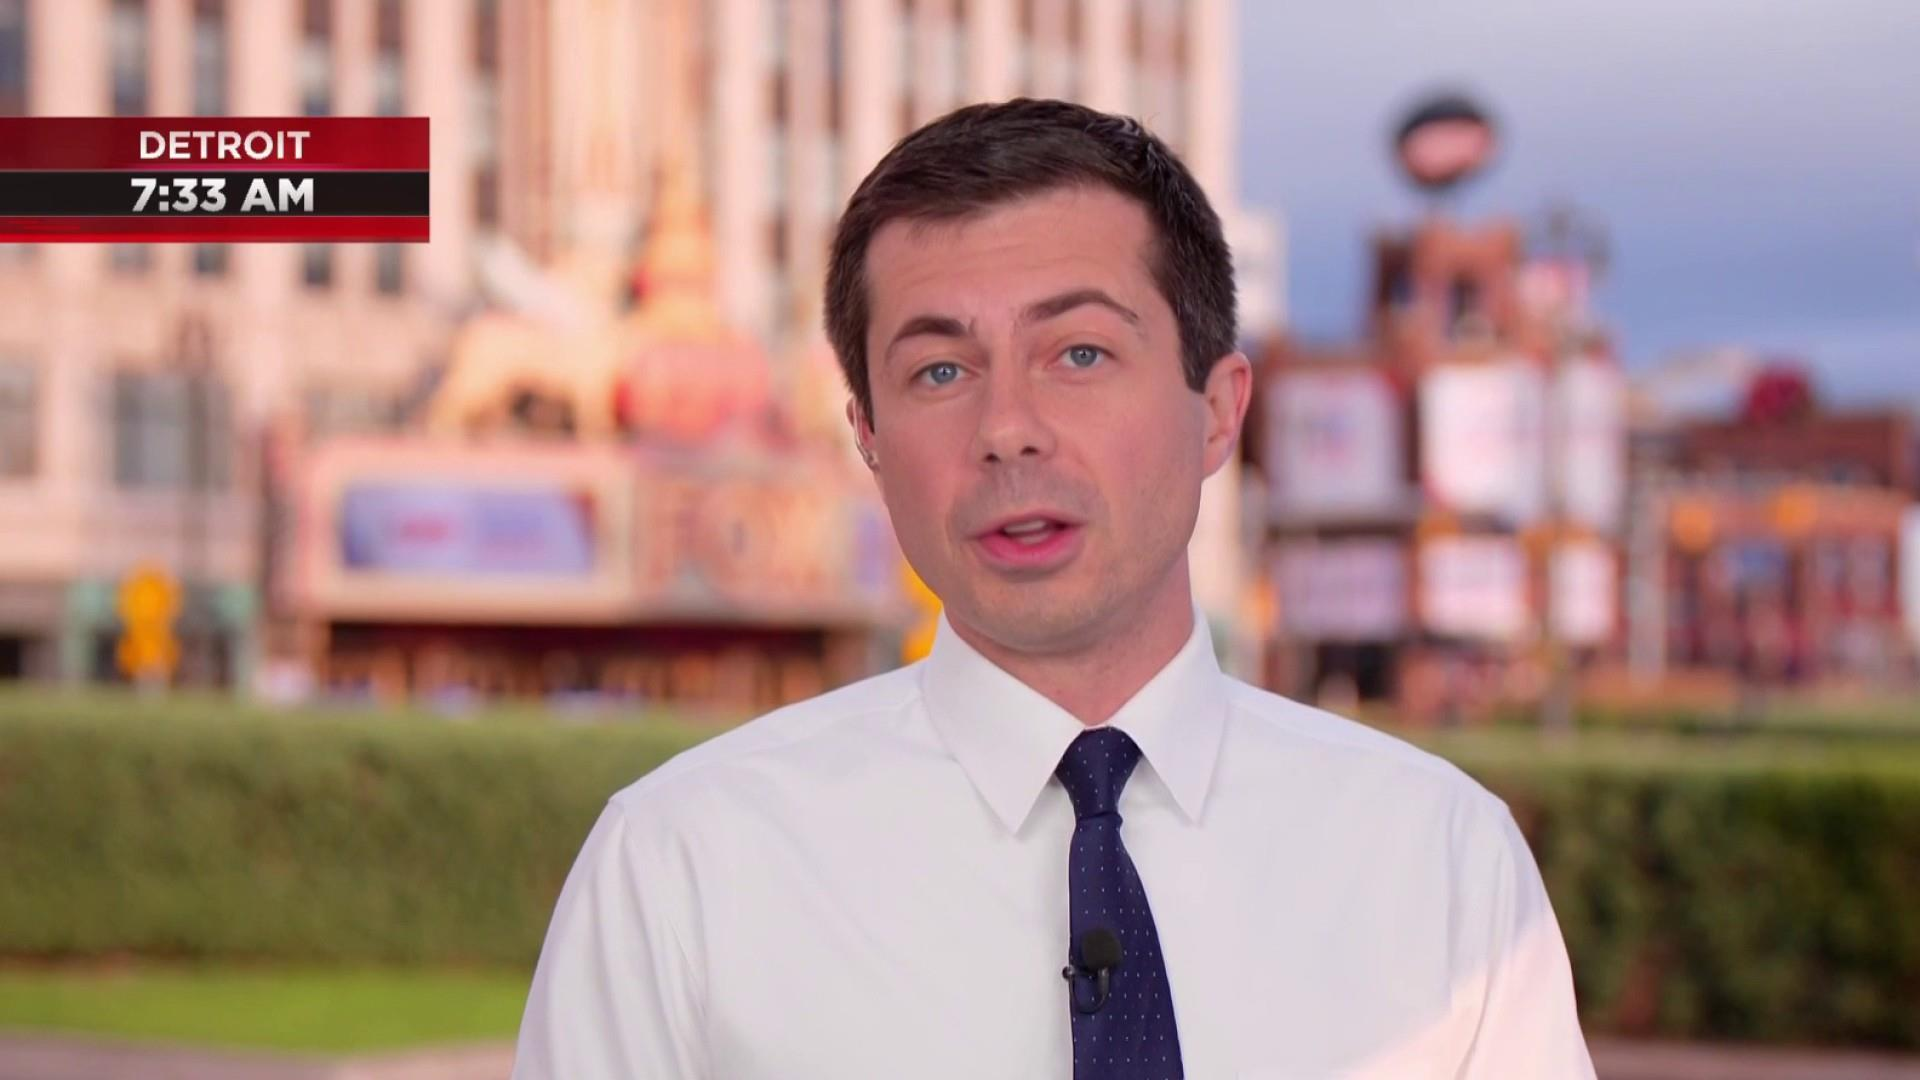 Buttigieg: We must take on racism systematically